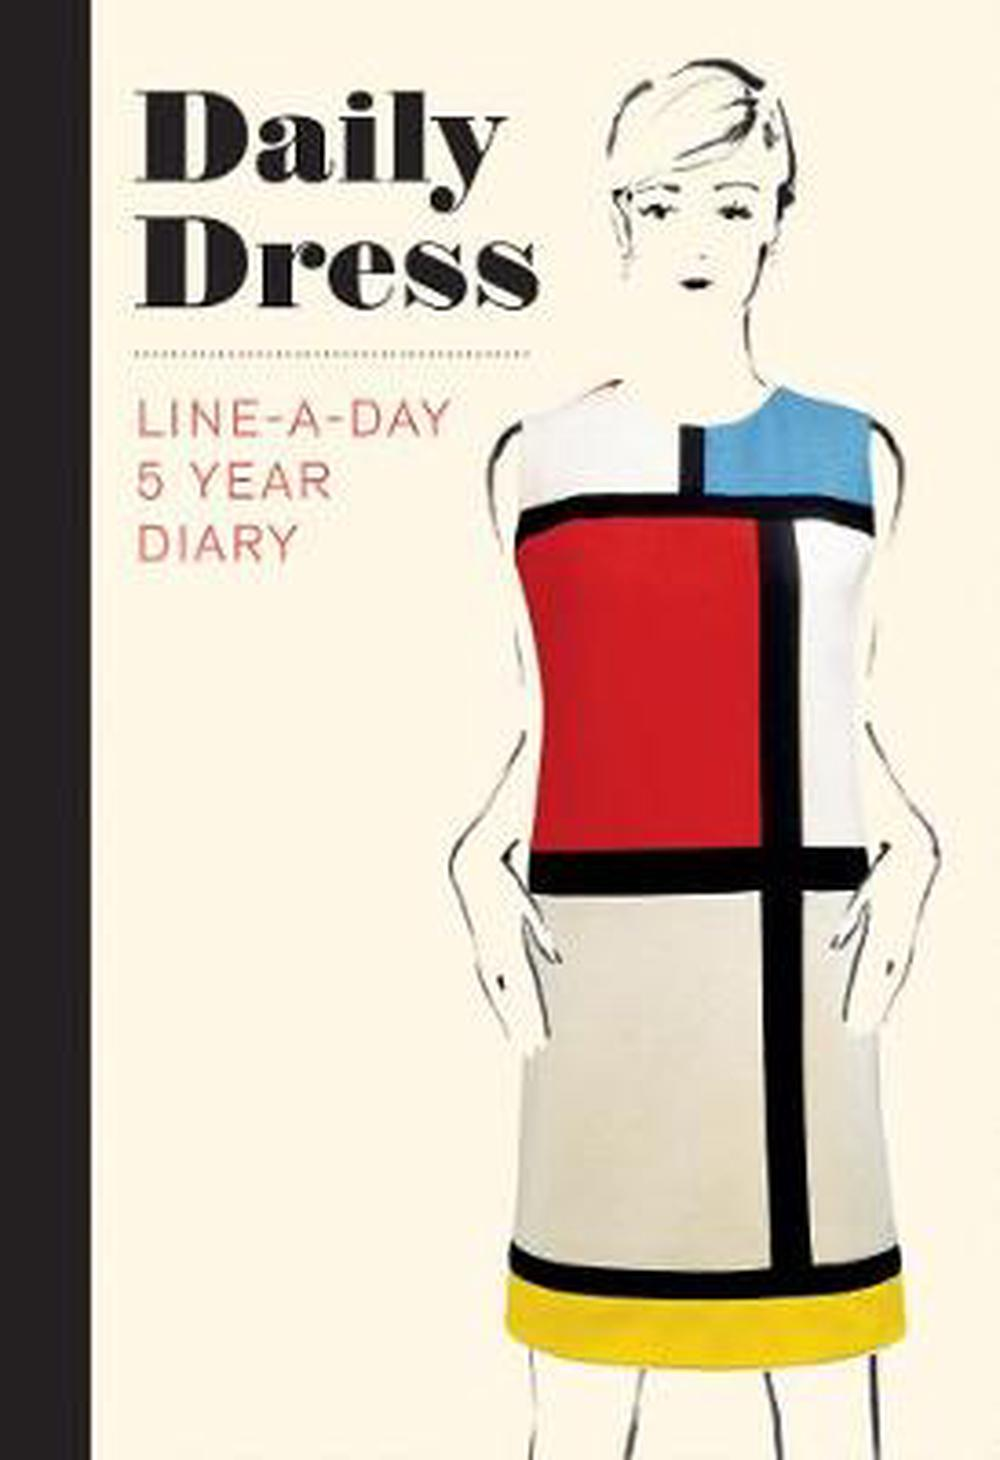 Daily Dress (Guided Journal): A Line-A-Day 5 Year Diary (Diaries)